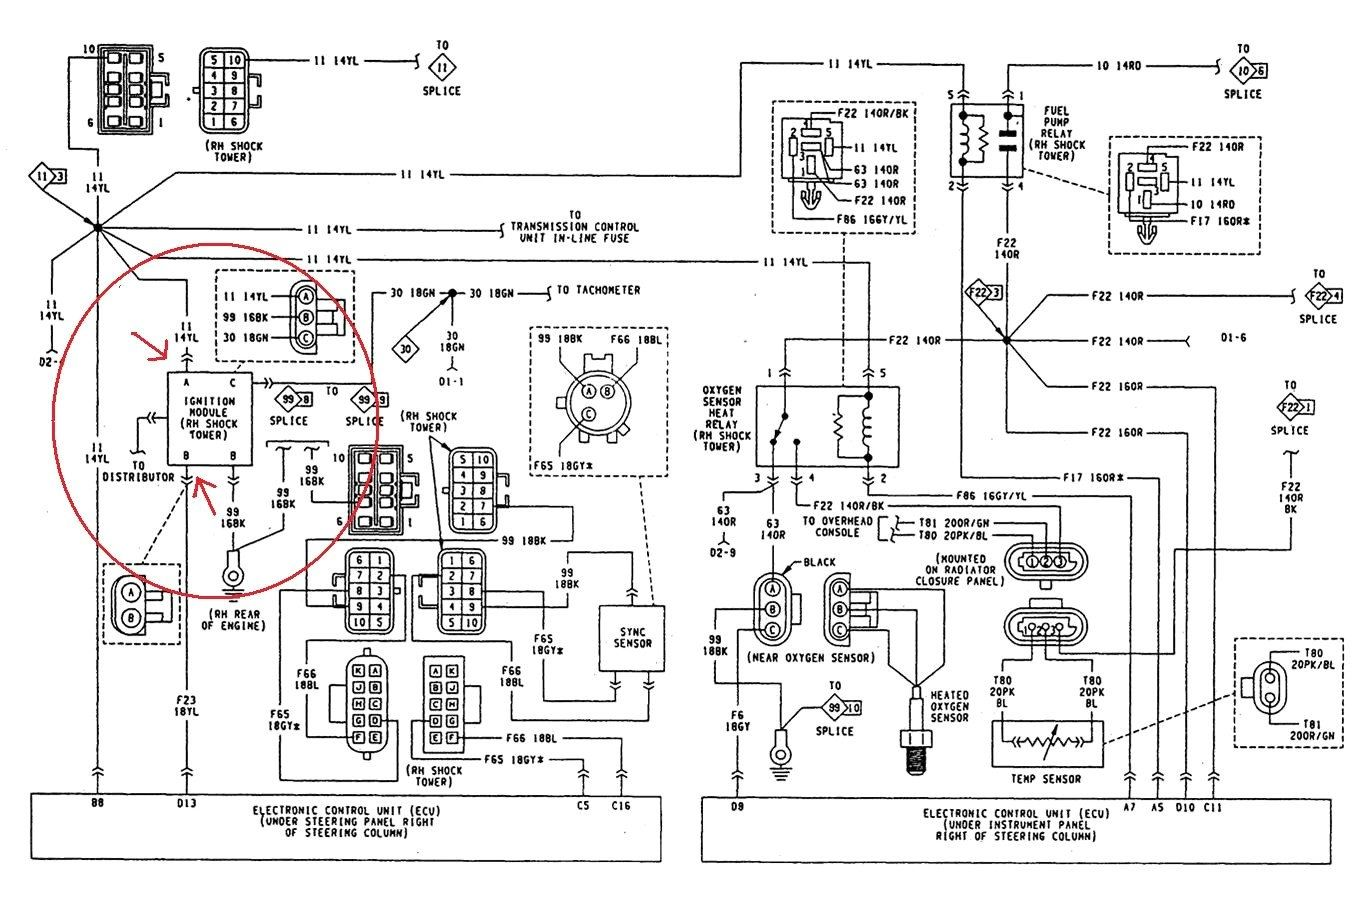 small resolution of 1990 jeep yj vacuum diagram 1990 jeep wrangler 4 2 vacuum diagram within 1990 jeep wrangler wiring